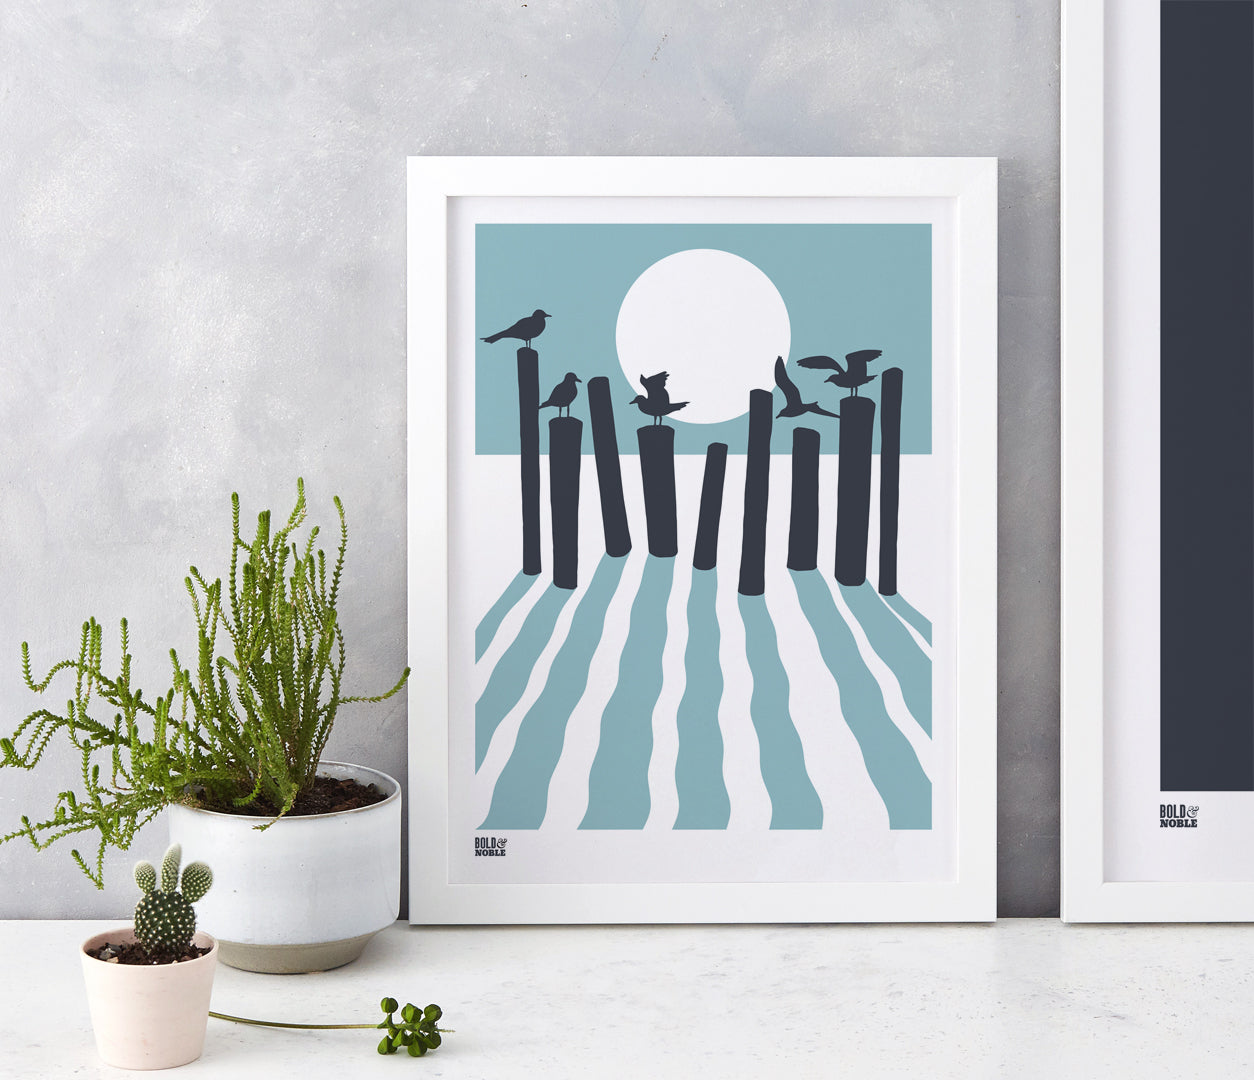 On The Beach in Coastal Blue, fits into standard size frames or can be bespoke framed